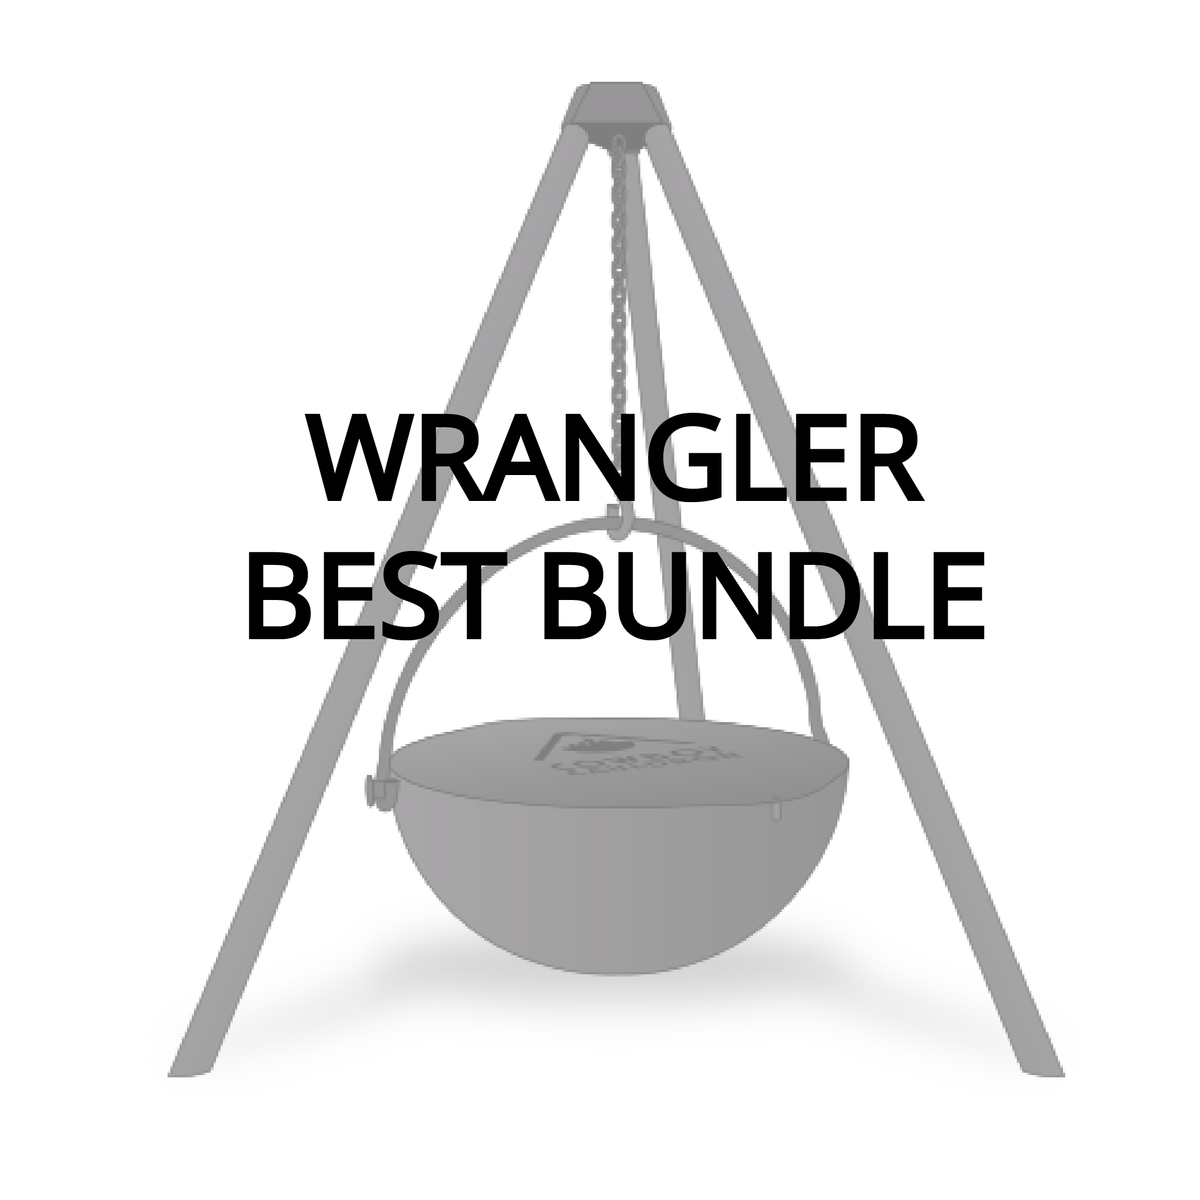 The Wrangler - Best Bundle